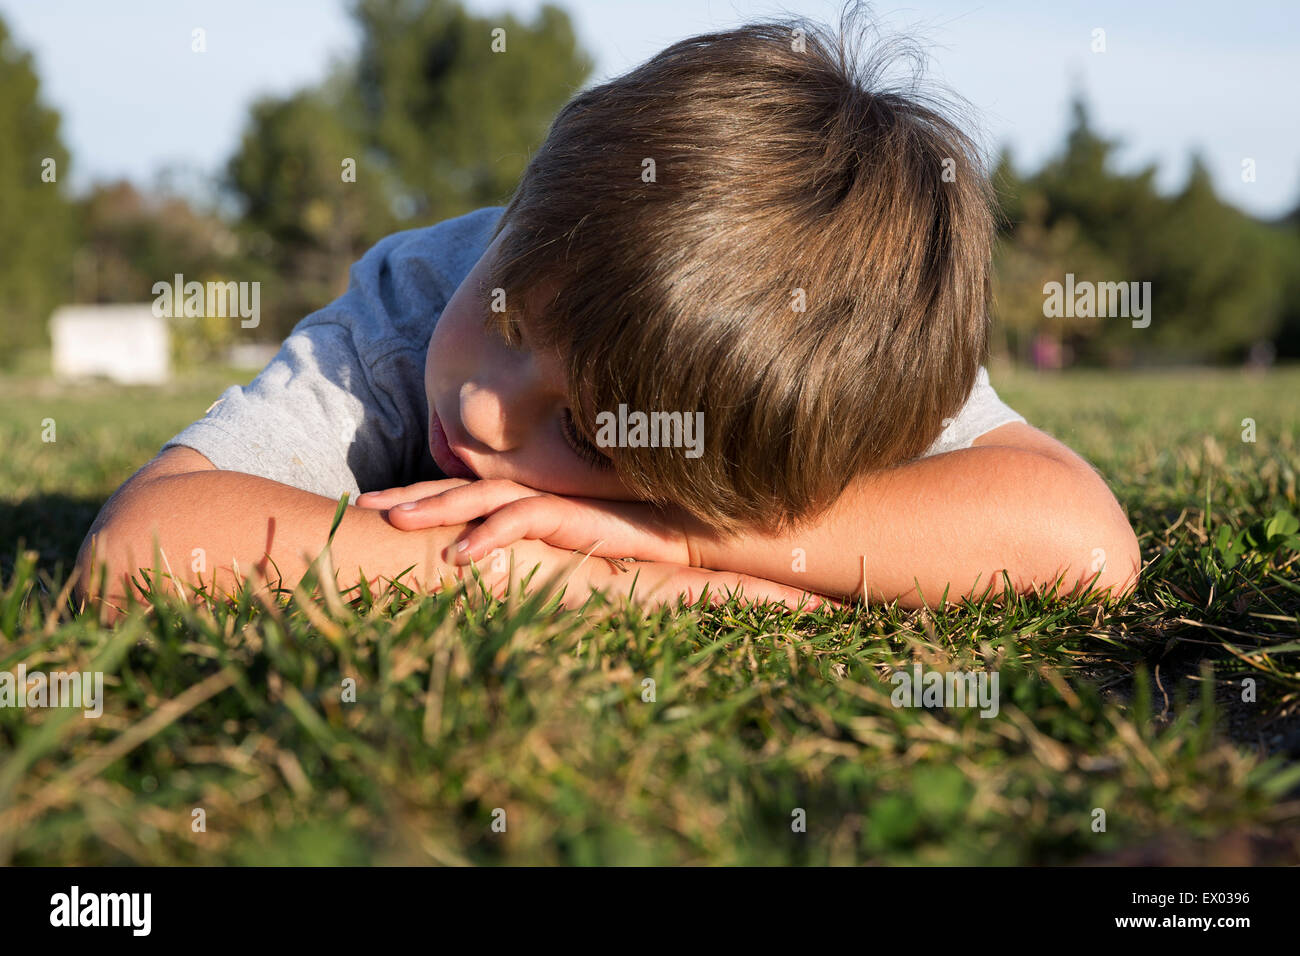 Sullen boy with head down lying on park grass - Stock Image